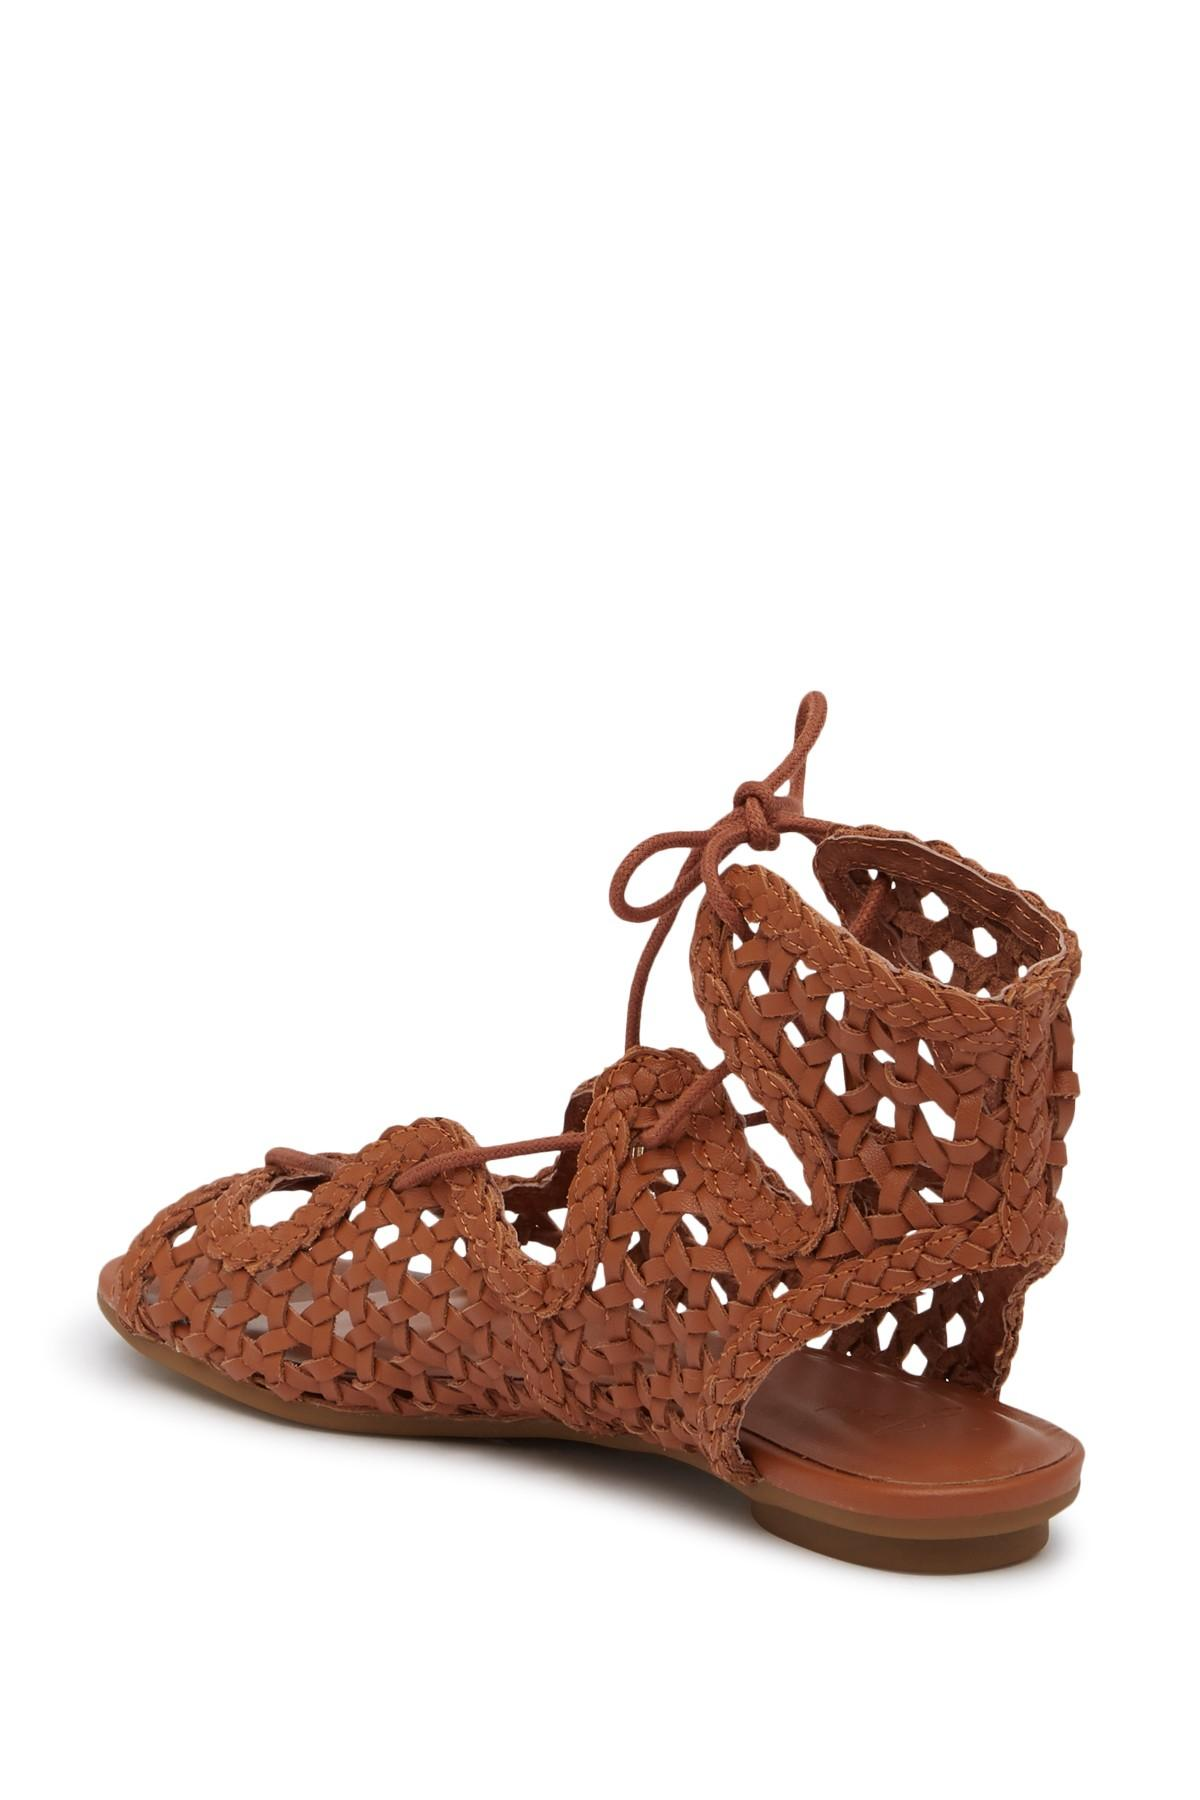 152bf09ad77 Joie - Brown Fannie Leather Gladiator Sandal - Lyst. View fullscreen